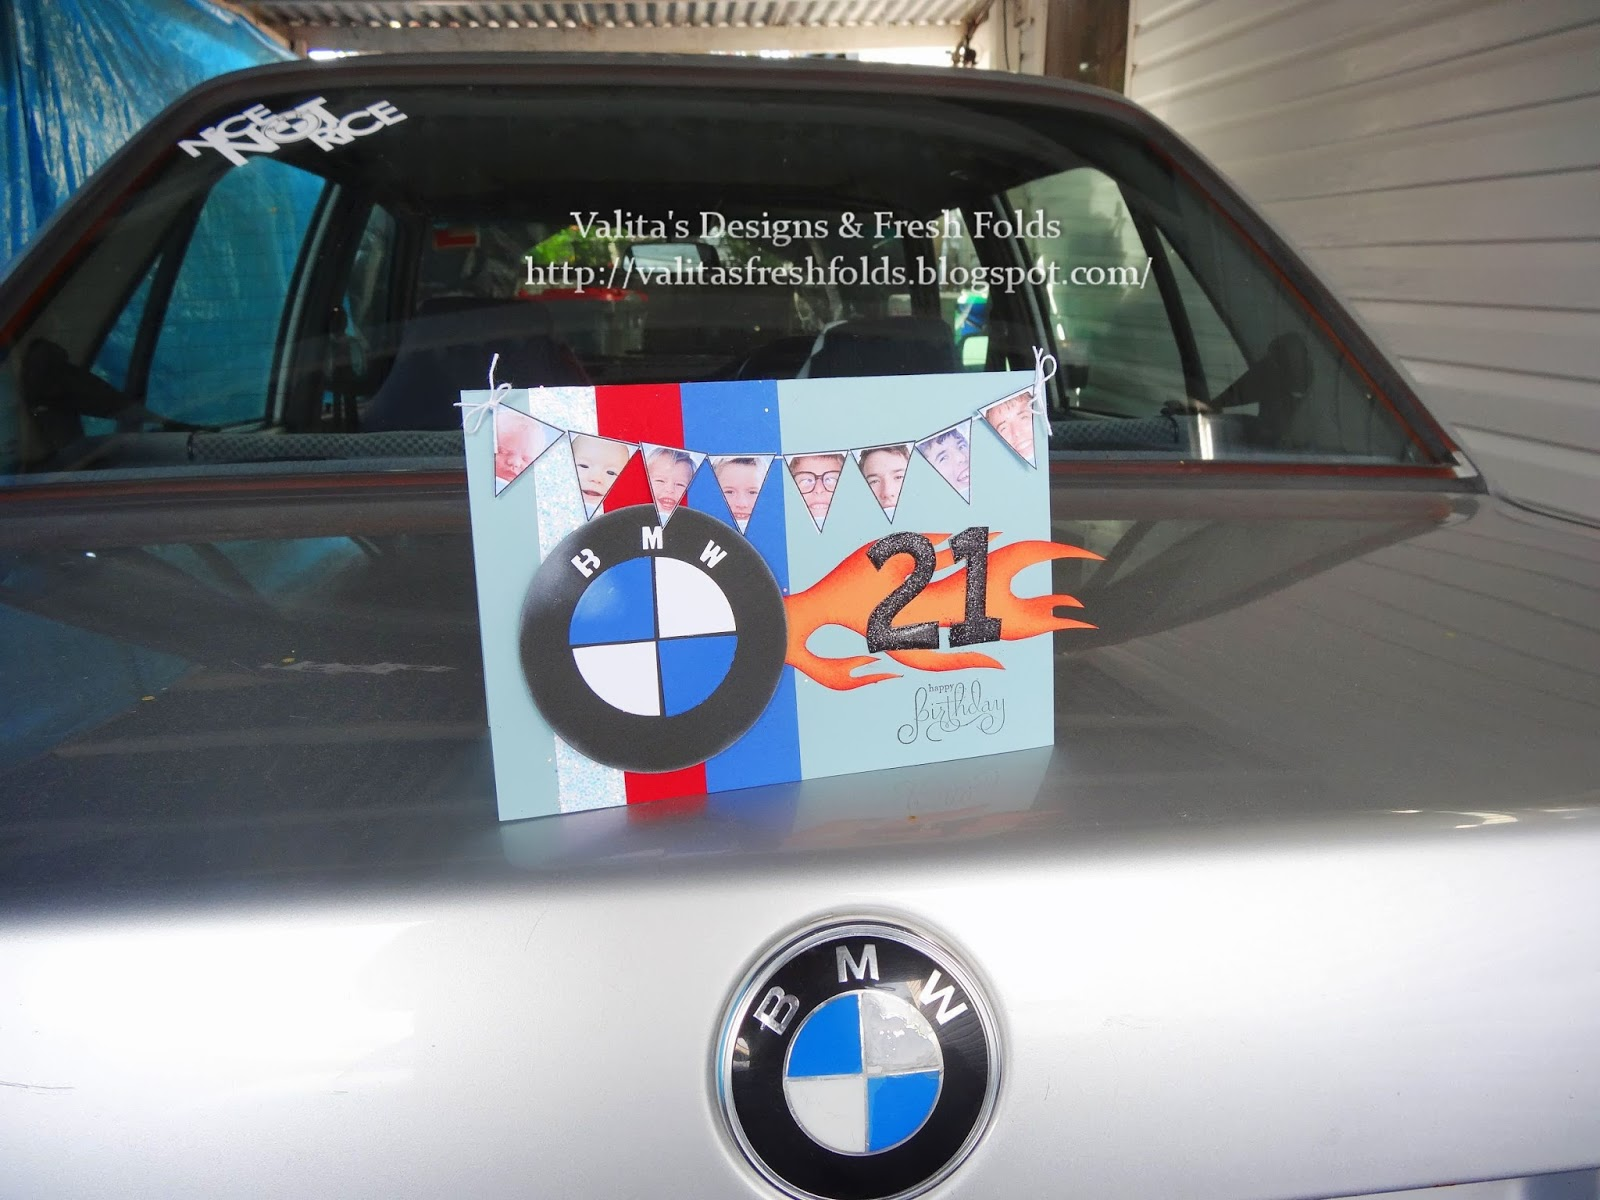 Valitas designs fresh folds bmw card and suprise birthday we recently helped him buy another old school bmw which he loves and that was my inspiration for his card and cake bookmarktalkfo Choice Image